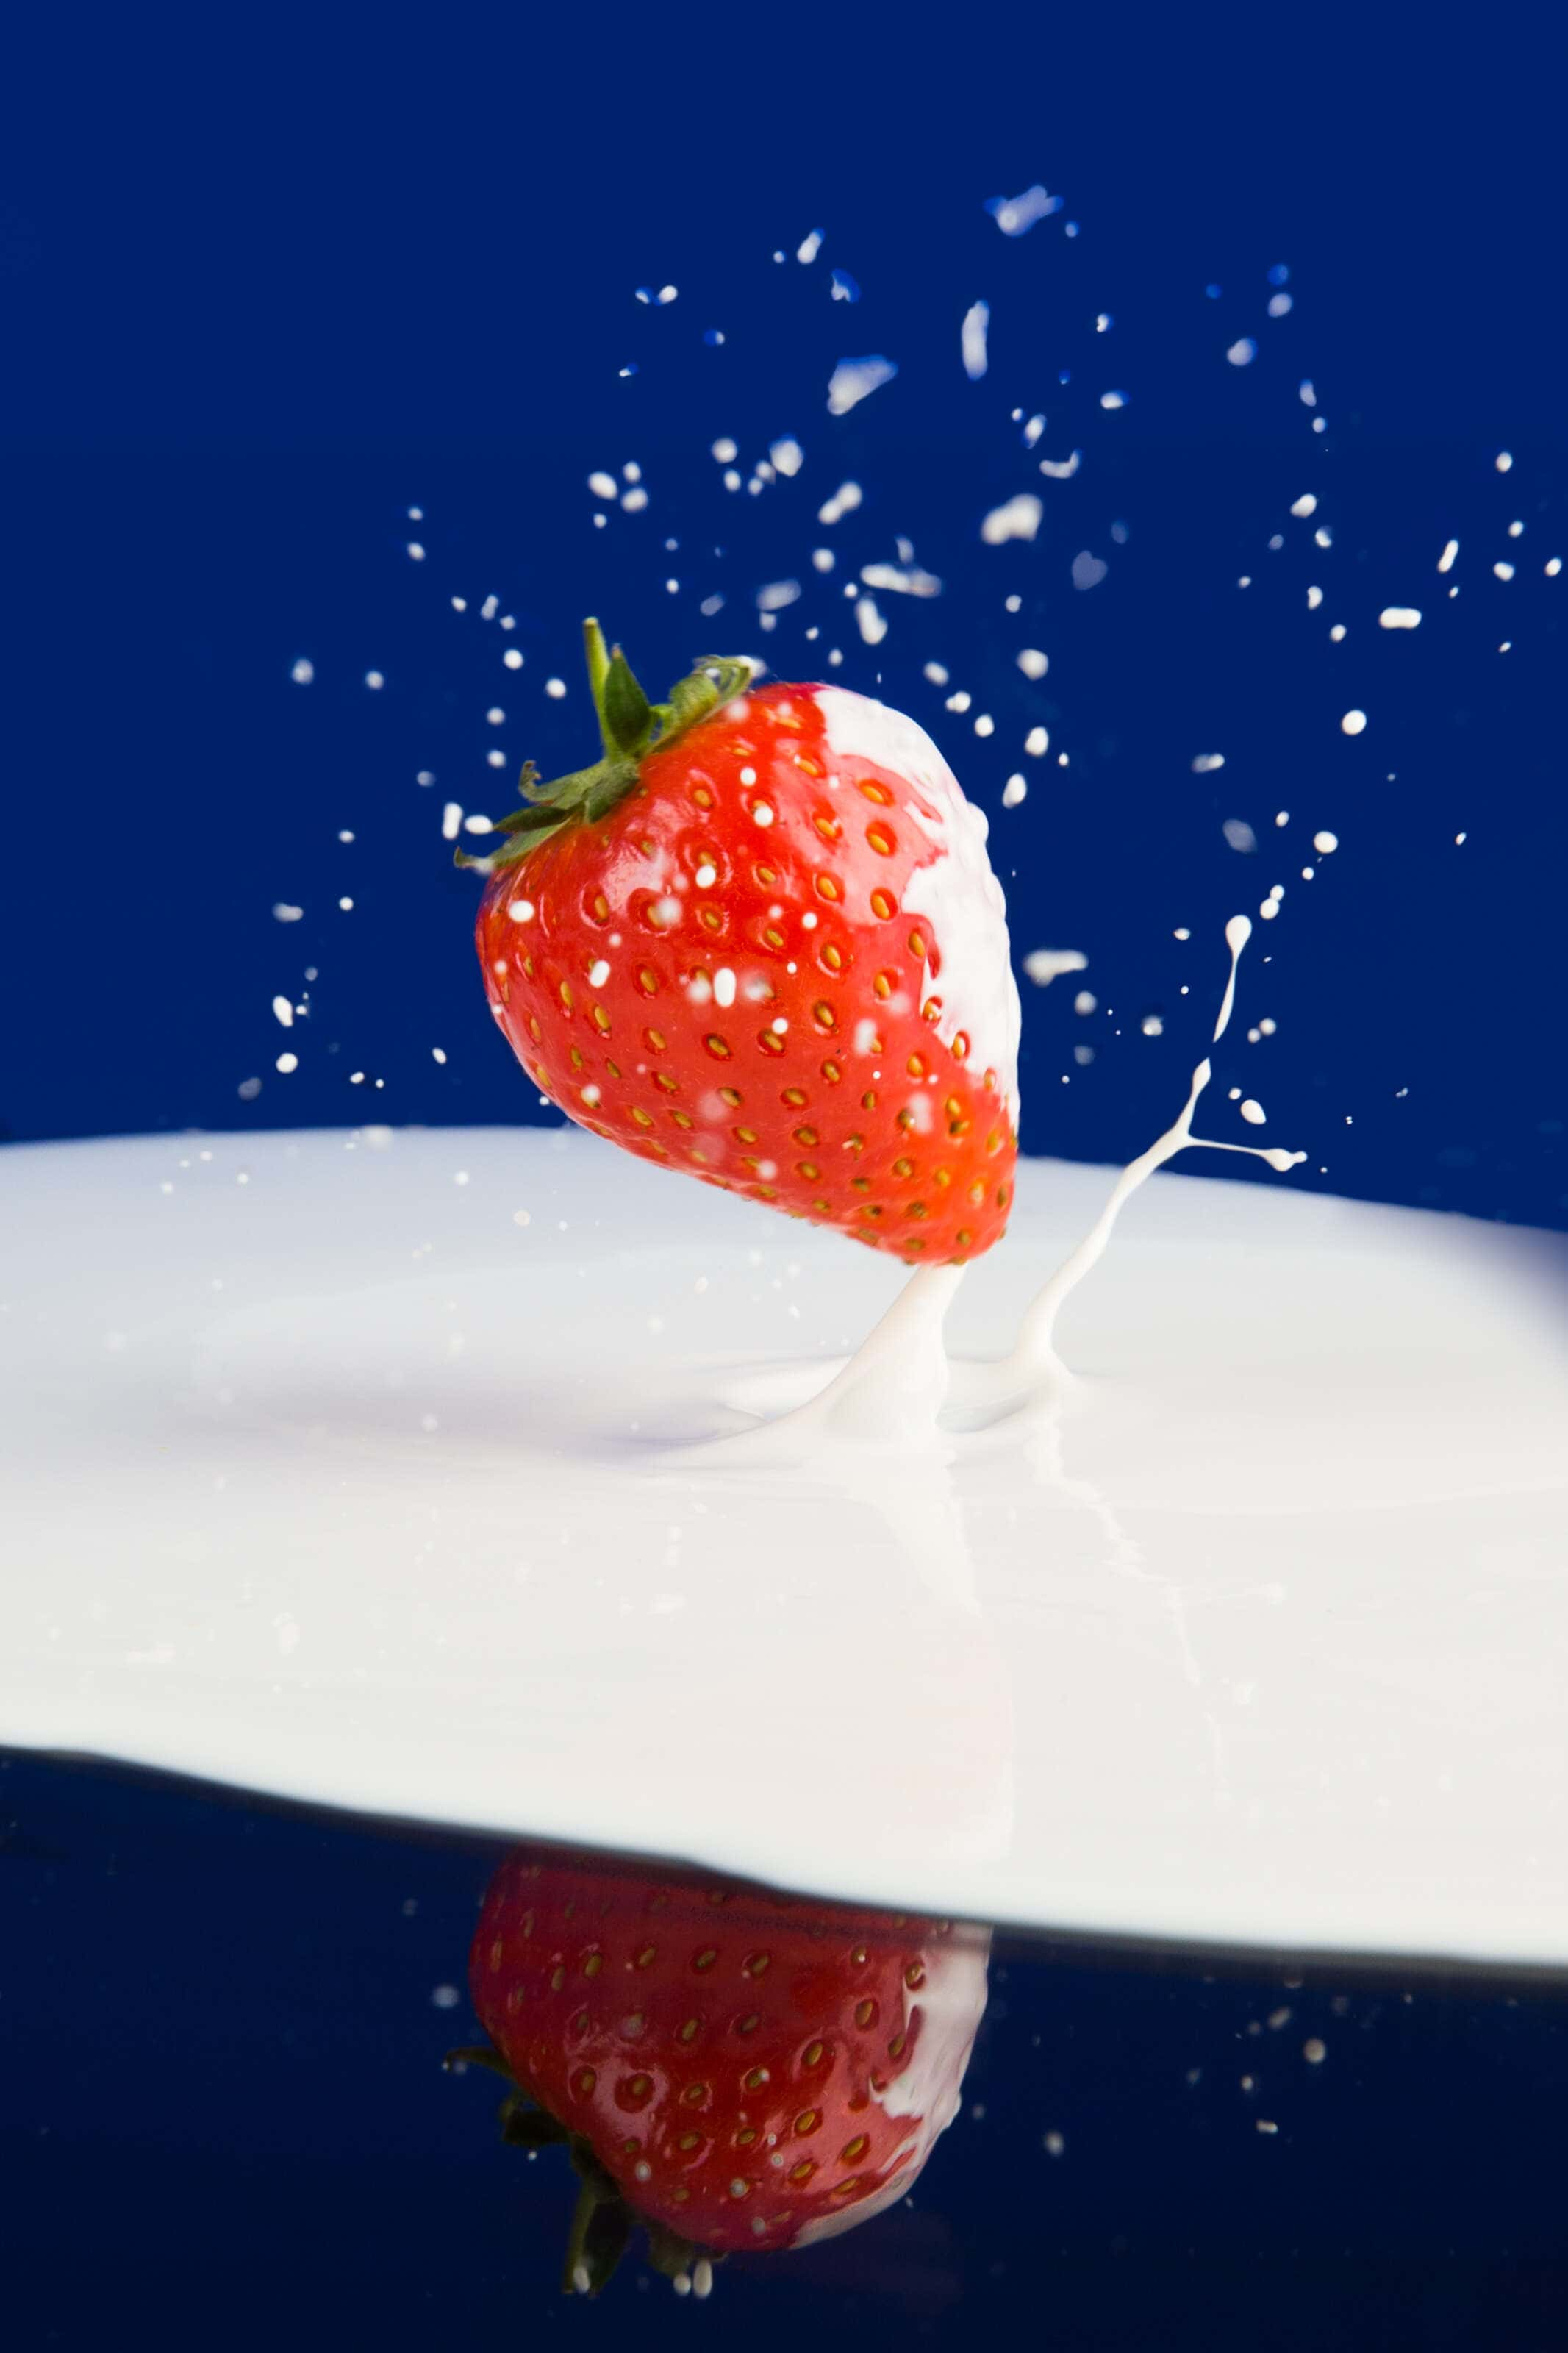 A strawbery falling onto cream on a mirrored surface.